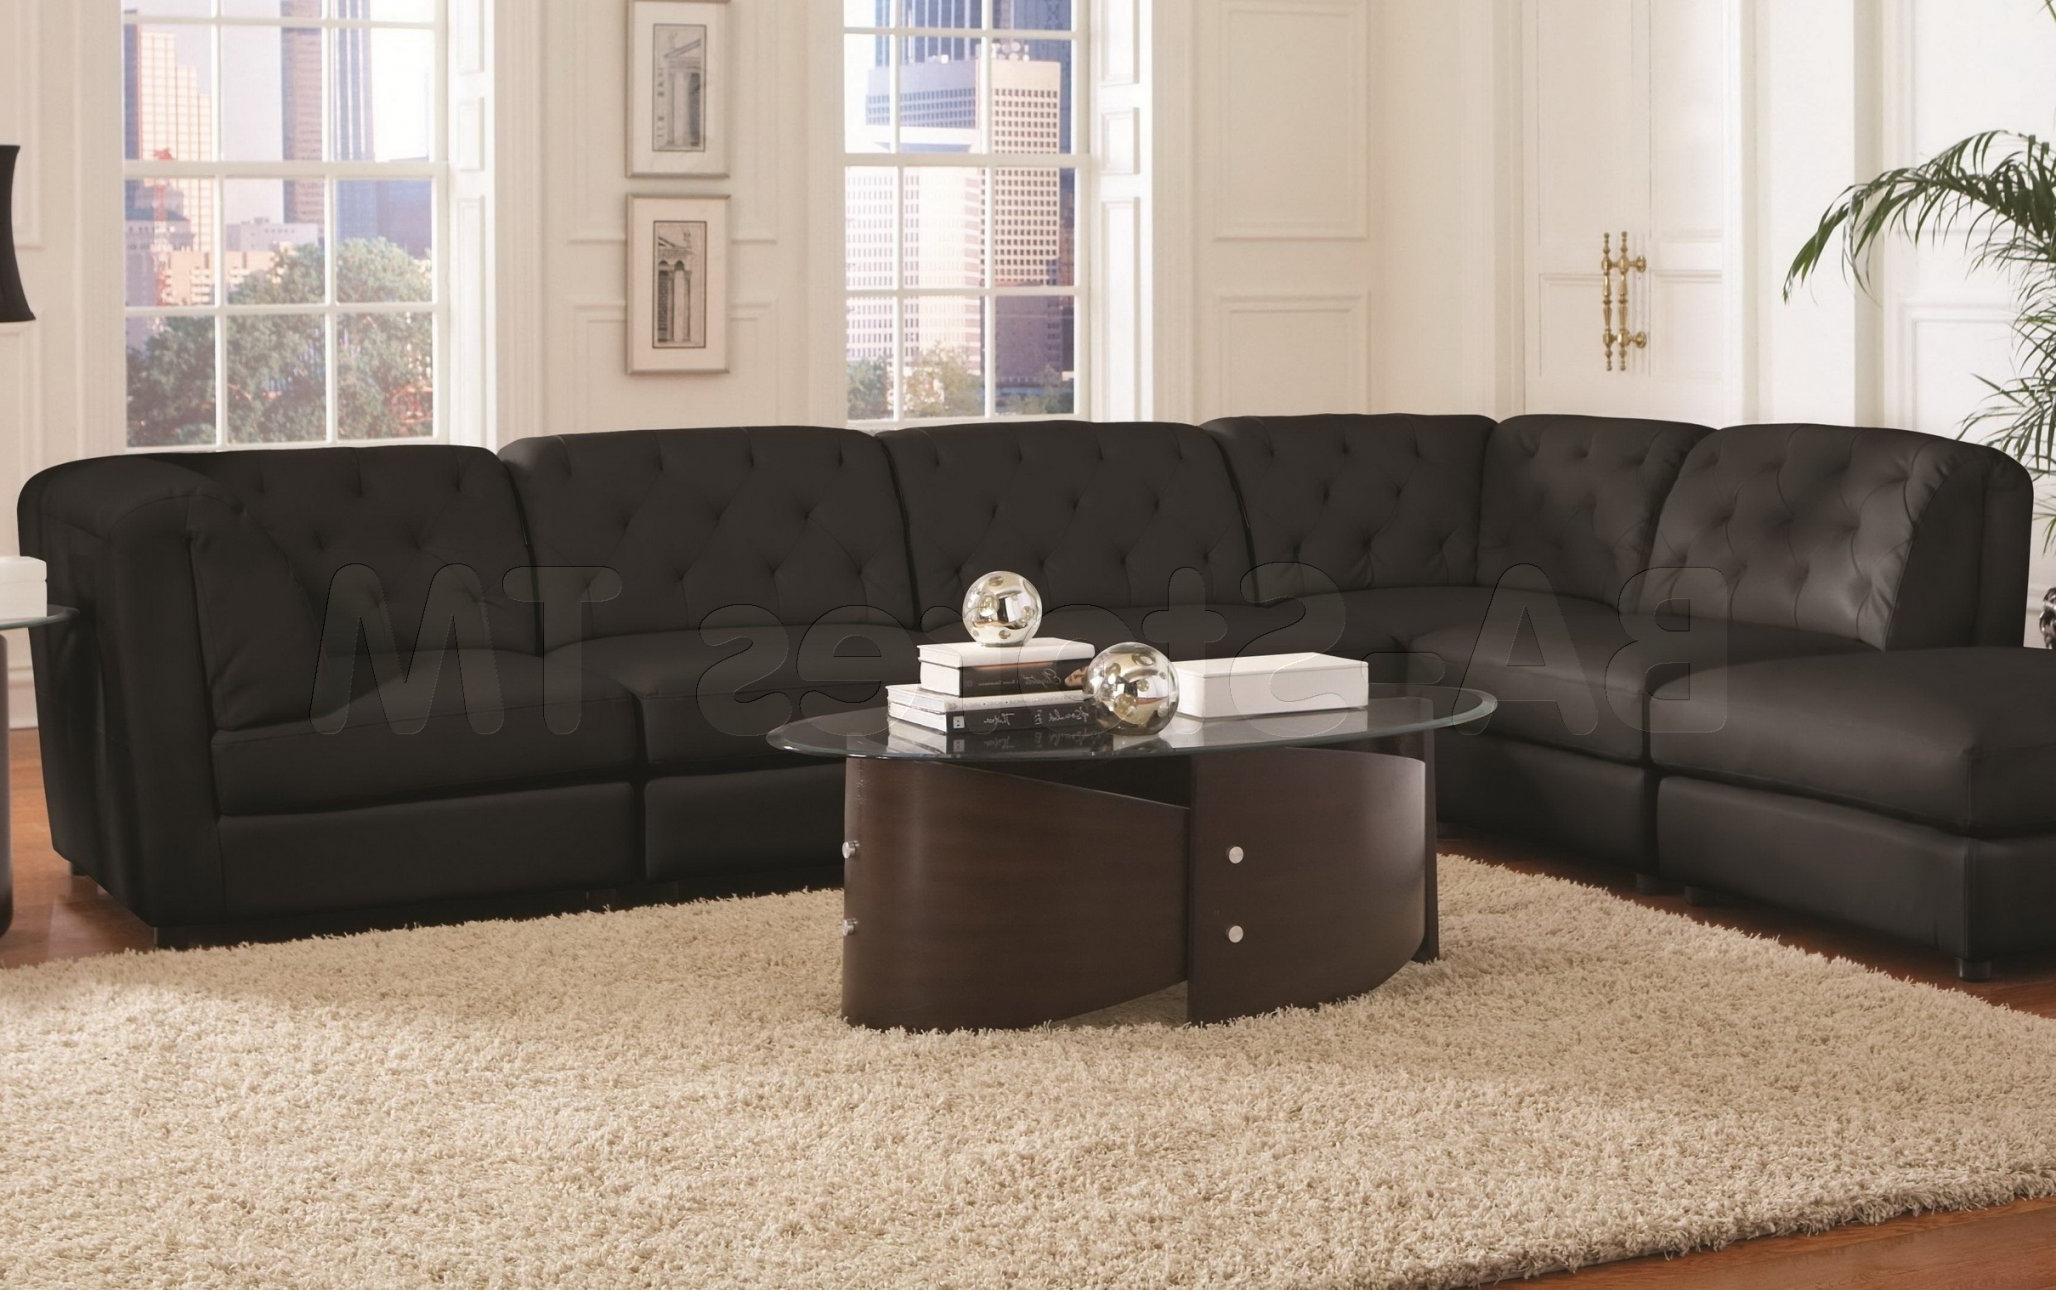 Quinn Black Bonded Leather Match Modular Sectional Sofa Throughout In Widely Used Leather Modular Sectional Sofas (View 15 of 20)